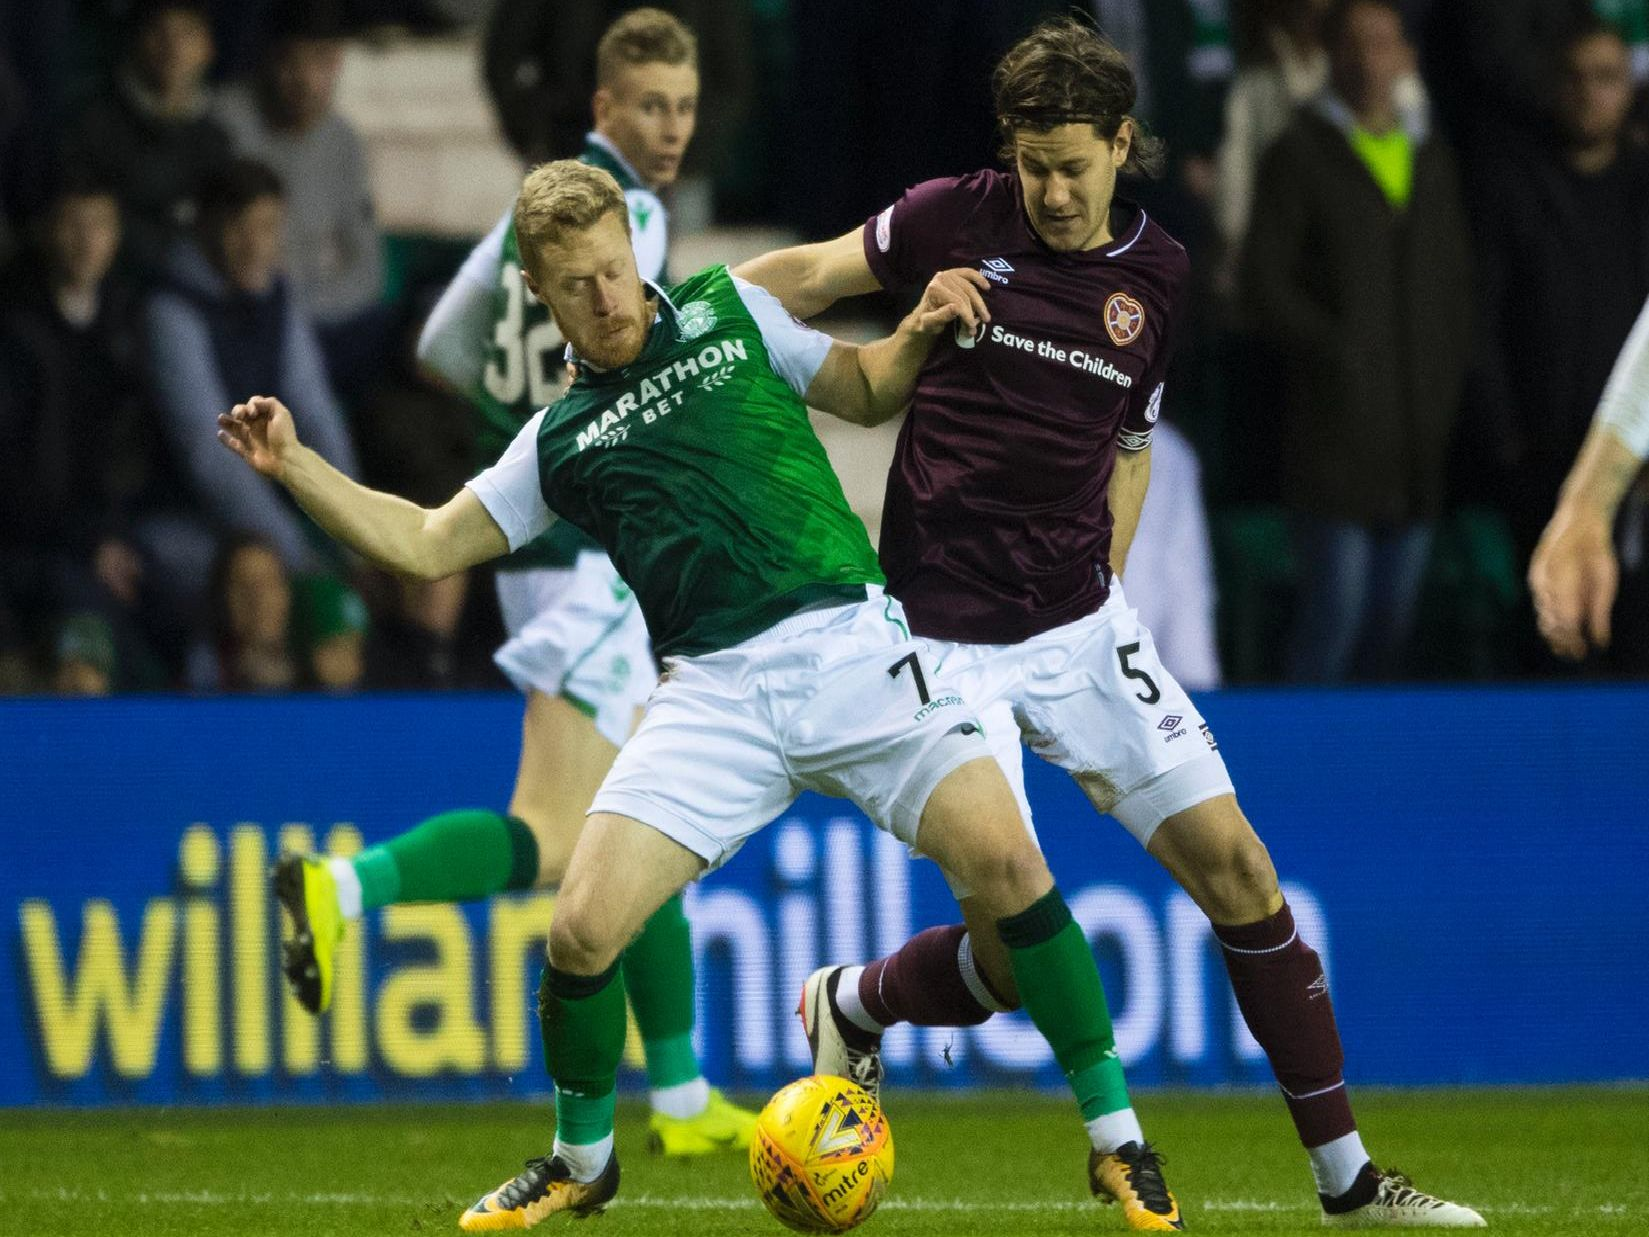 Hearts and Hibs have had mixed fortunes on the road this season.